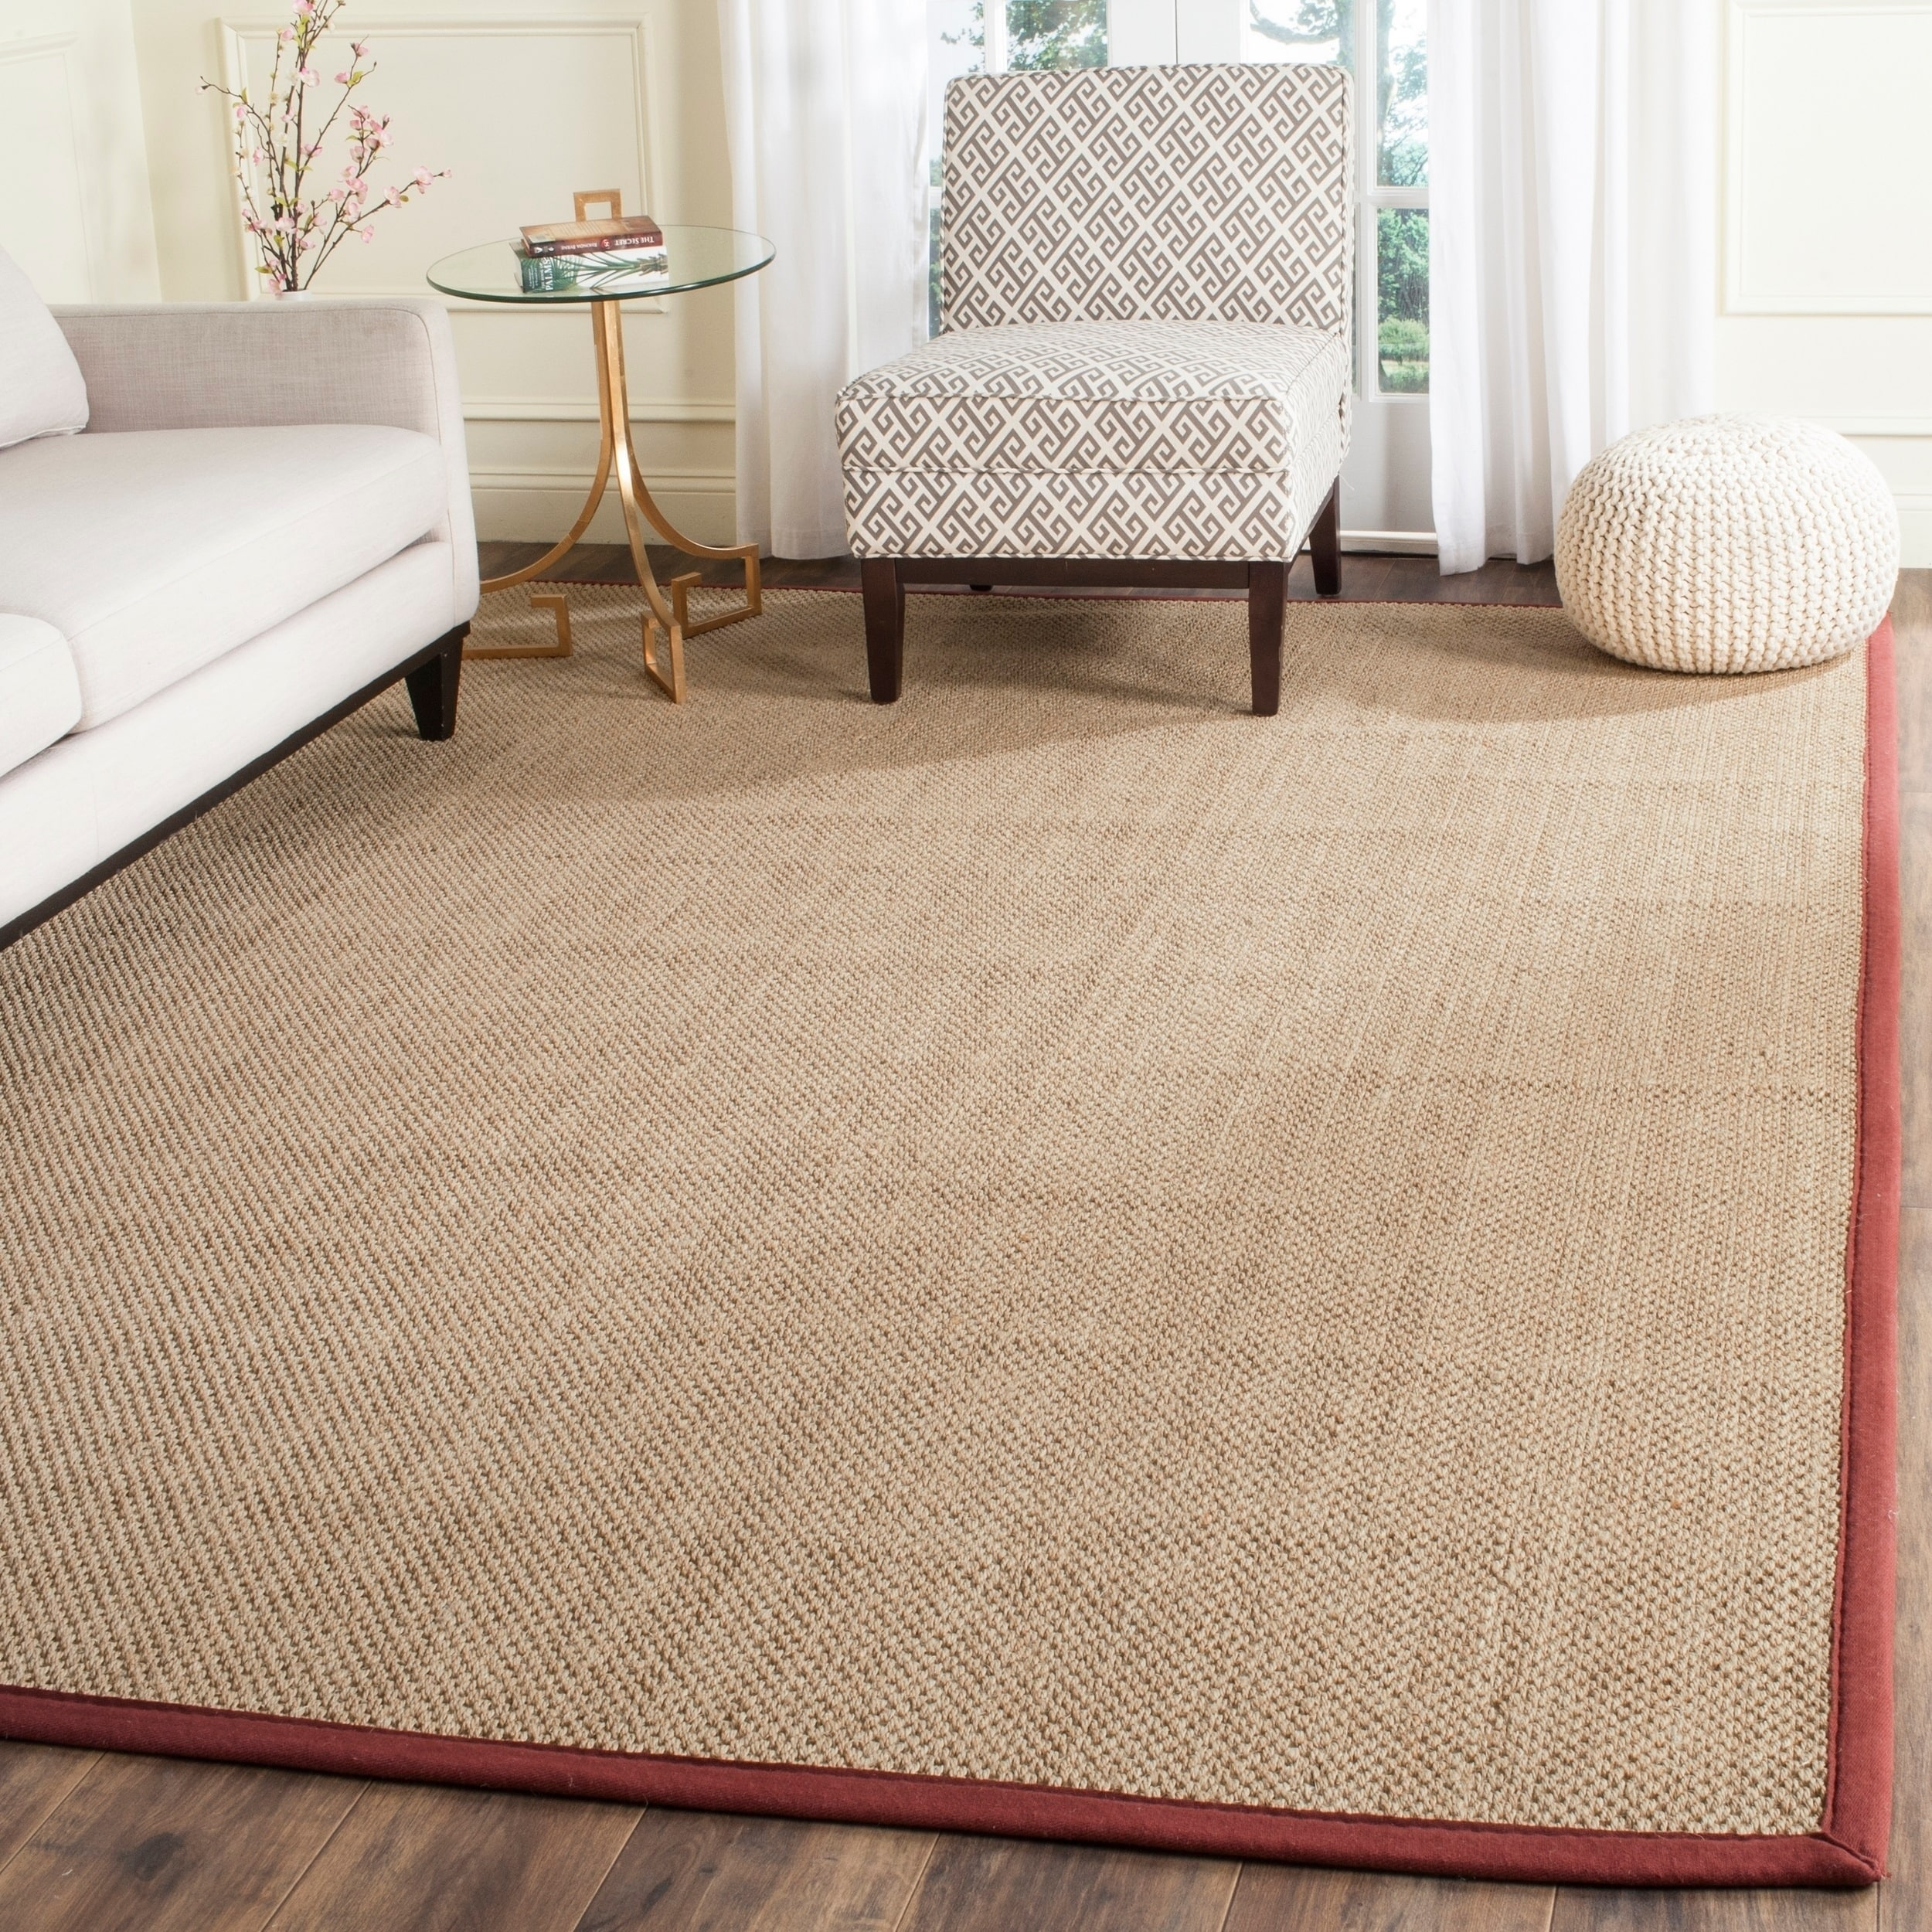 Safavieh Casual Natural Fiber Natural And Red Border Seagrass Rug